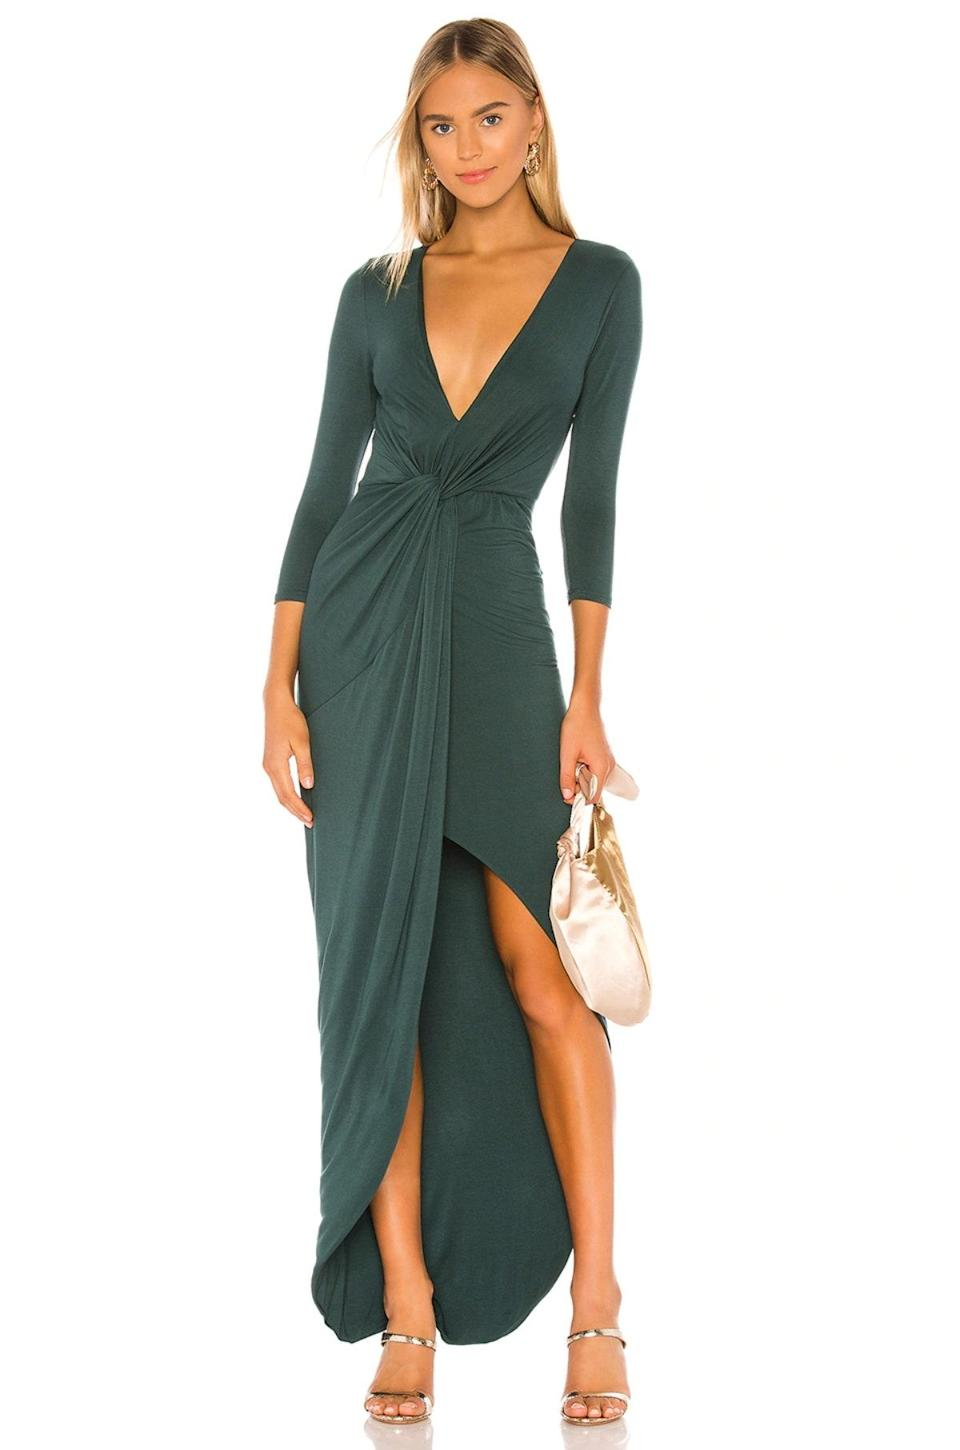 """Another reliable staple to have in your repertoire? A wear-anywhere maxi, like this jewel-tone wrap maxi dress with a high-low hem that's revealing in *all* the right places. $160, Revolve. <a href=""""https://www.revolve.com/lovers-friends-sundance-maxi-dress/dp/LOVF-WD2326/"""" rel=""""nofollow noopener"""" target=""""_blank"""" data-ylk=""""slk:Get it now!"""" class=""""link rapid-noclick-resp"""">Get it now!</a>"""